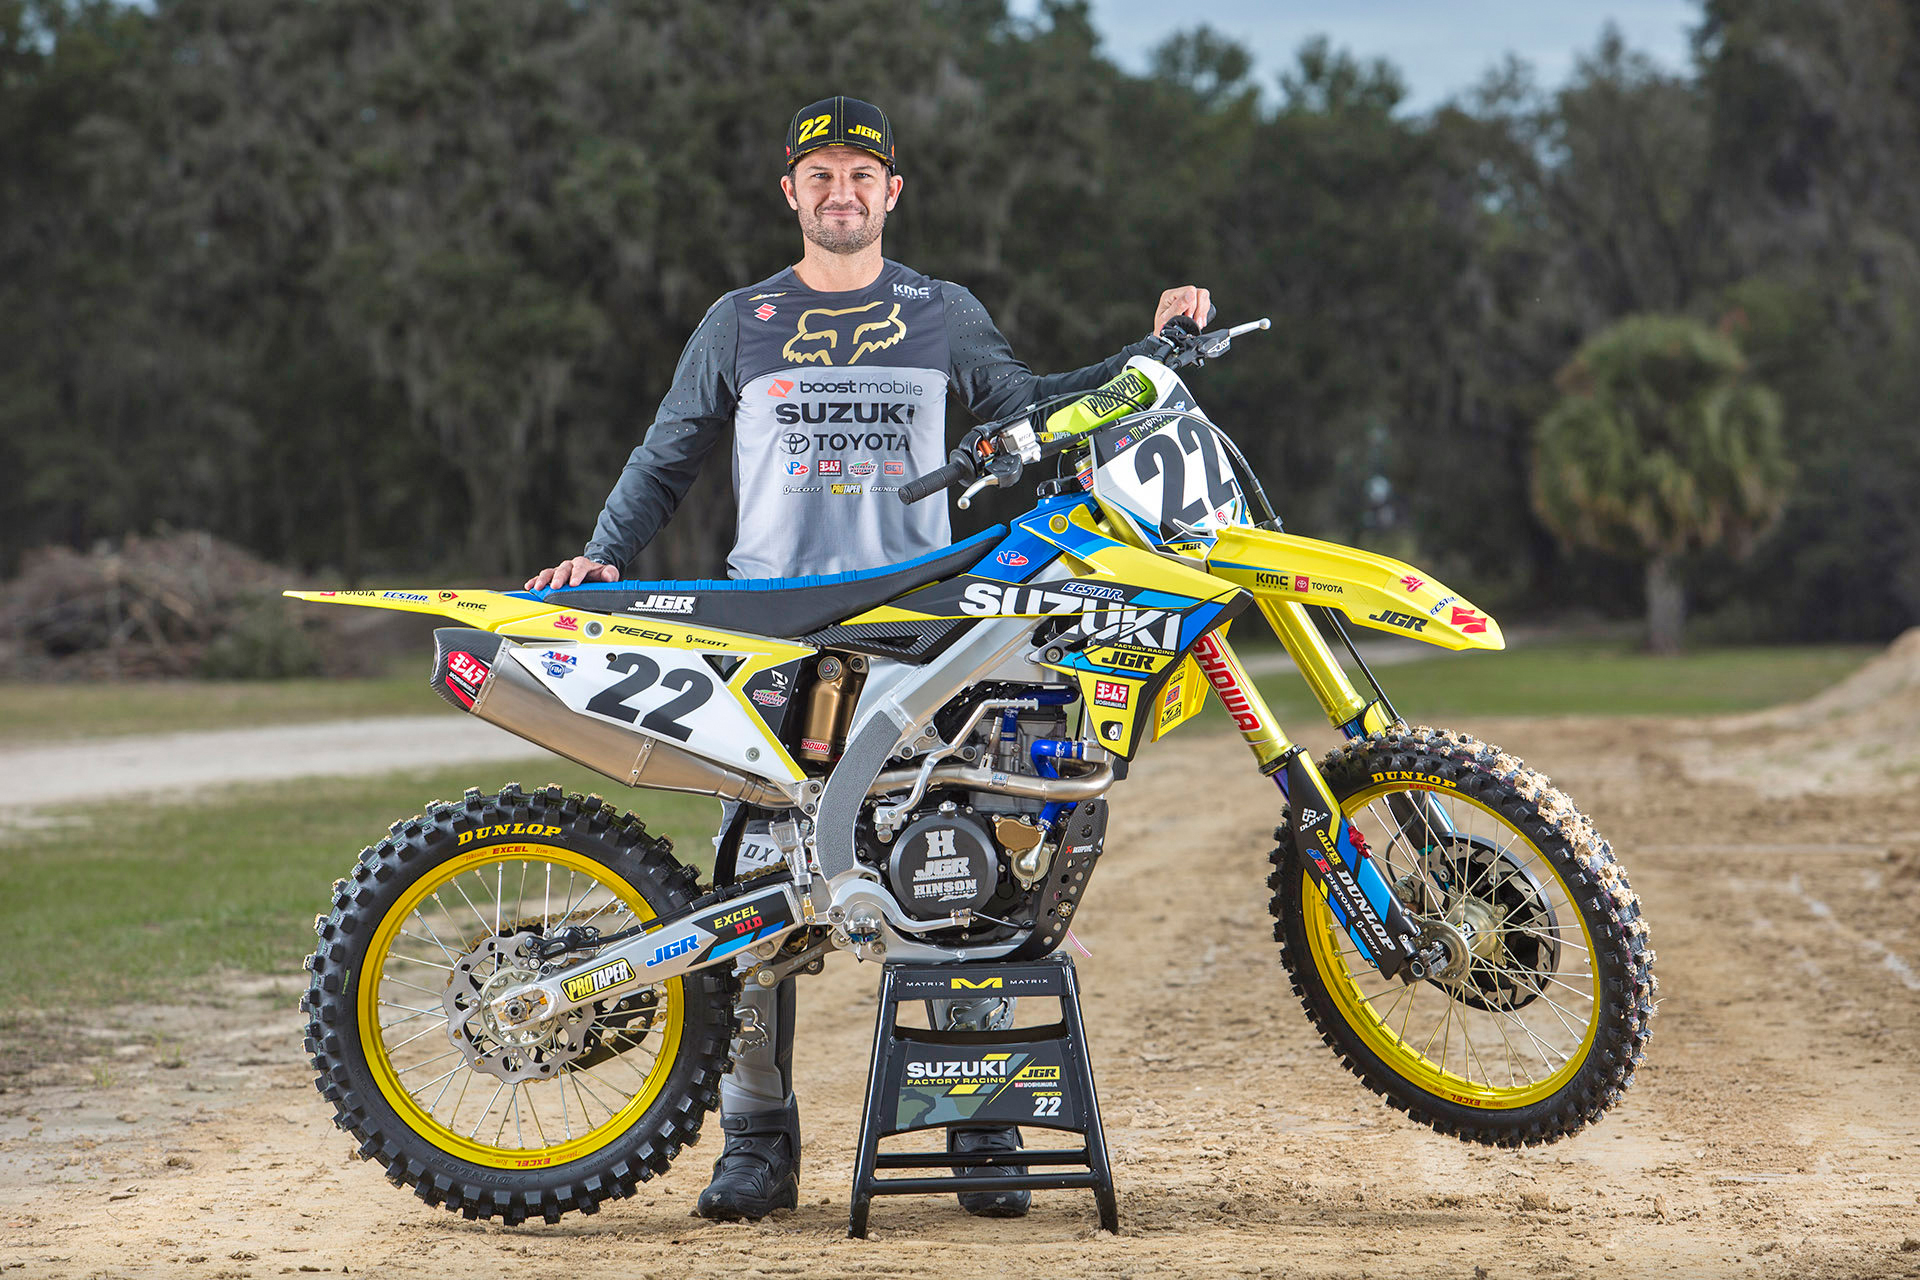 Fan favorite Chad Reed (#22) continues with the JGRMX team for the 2019 Supercross season